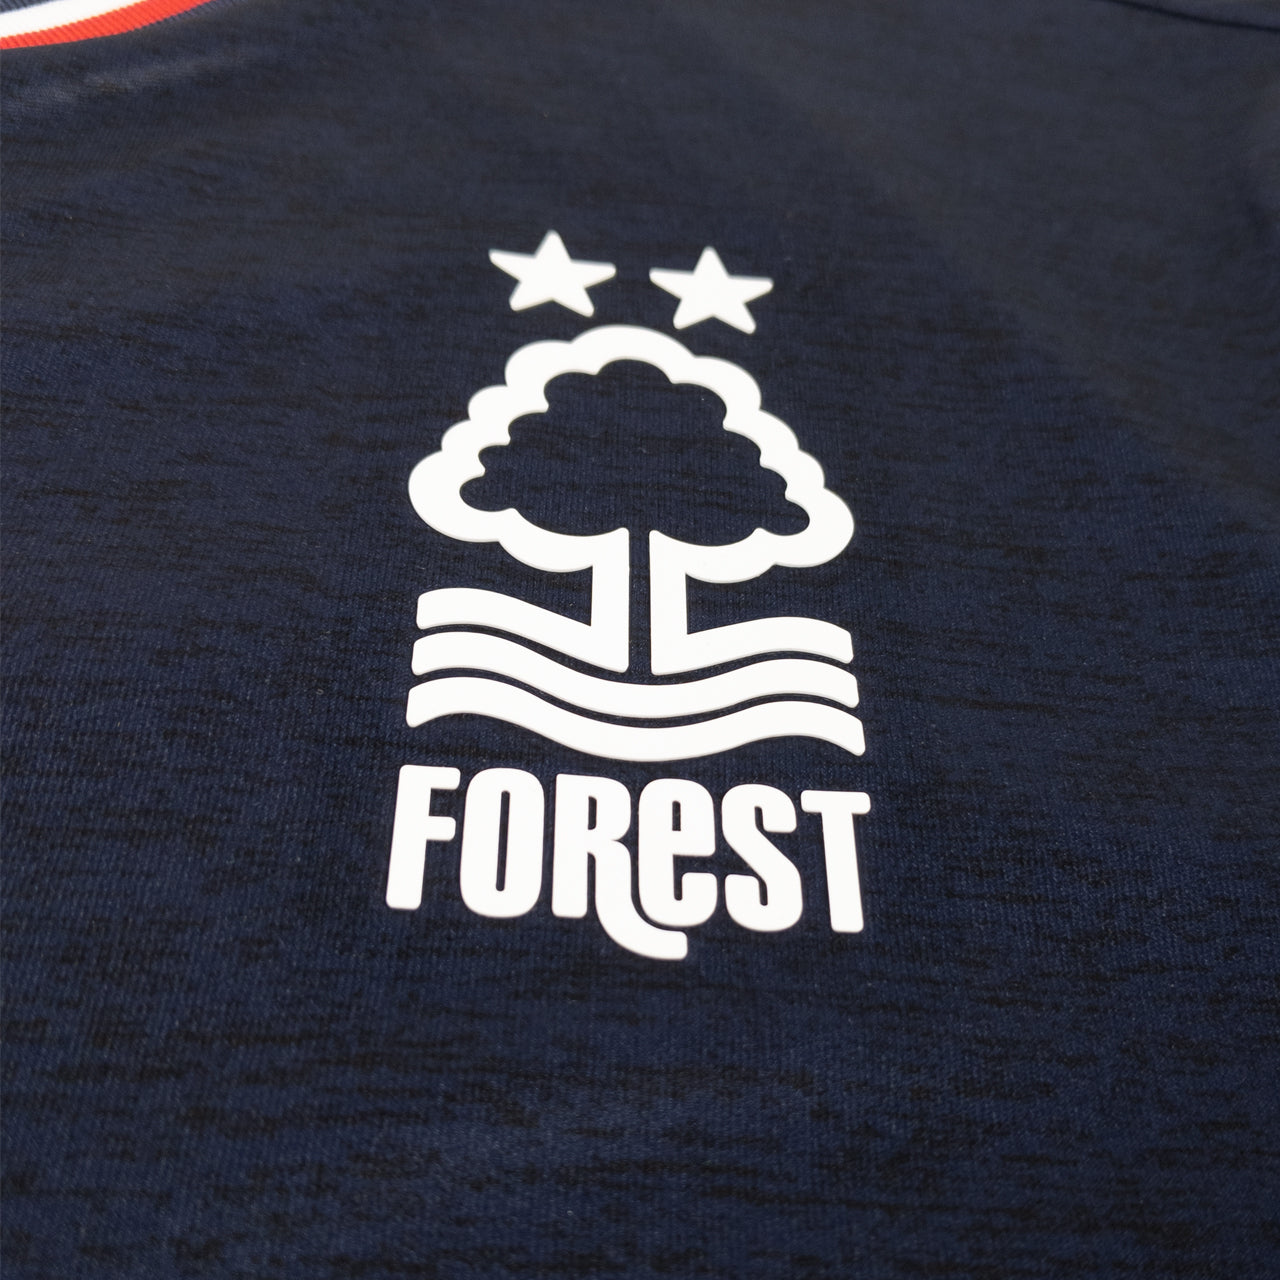 NFFC Mens Away Shirt 2019/20